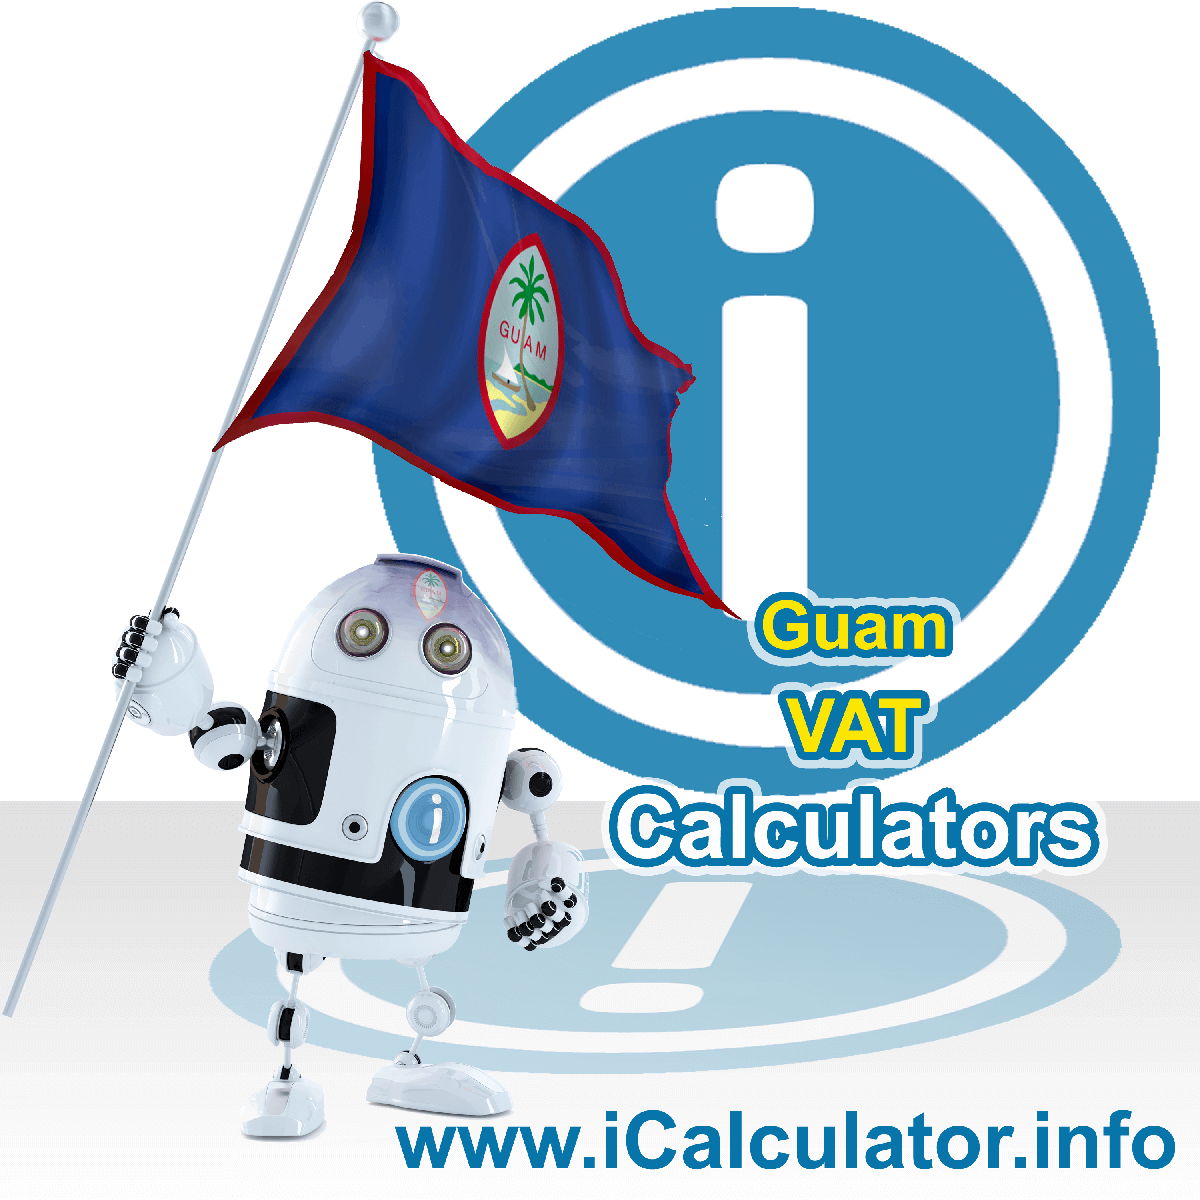 Guam VAT Calculator. This image shows the Guam flag and information relating to the VAT formula used for calculating Value Added Tax in Guam using the Guam VAT Calculator in 2021